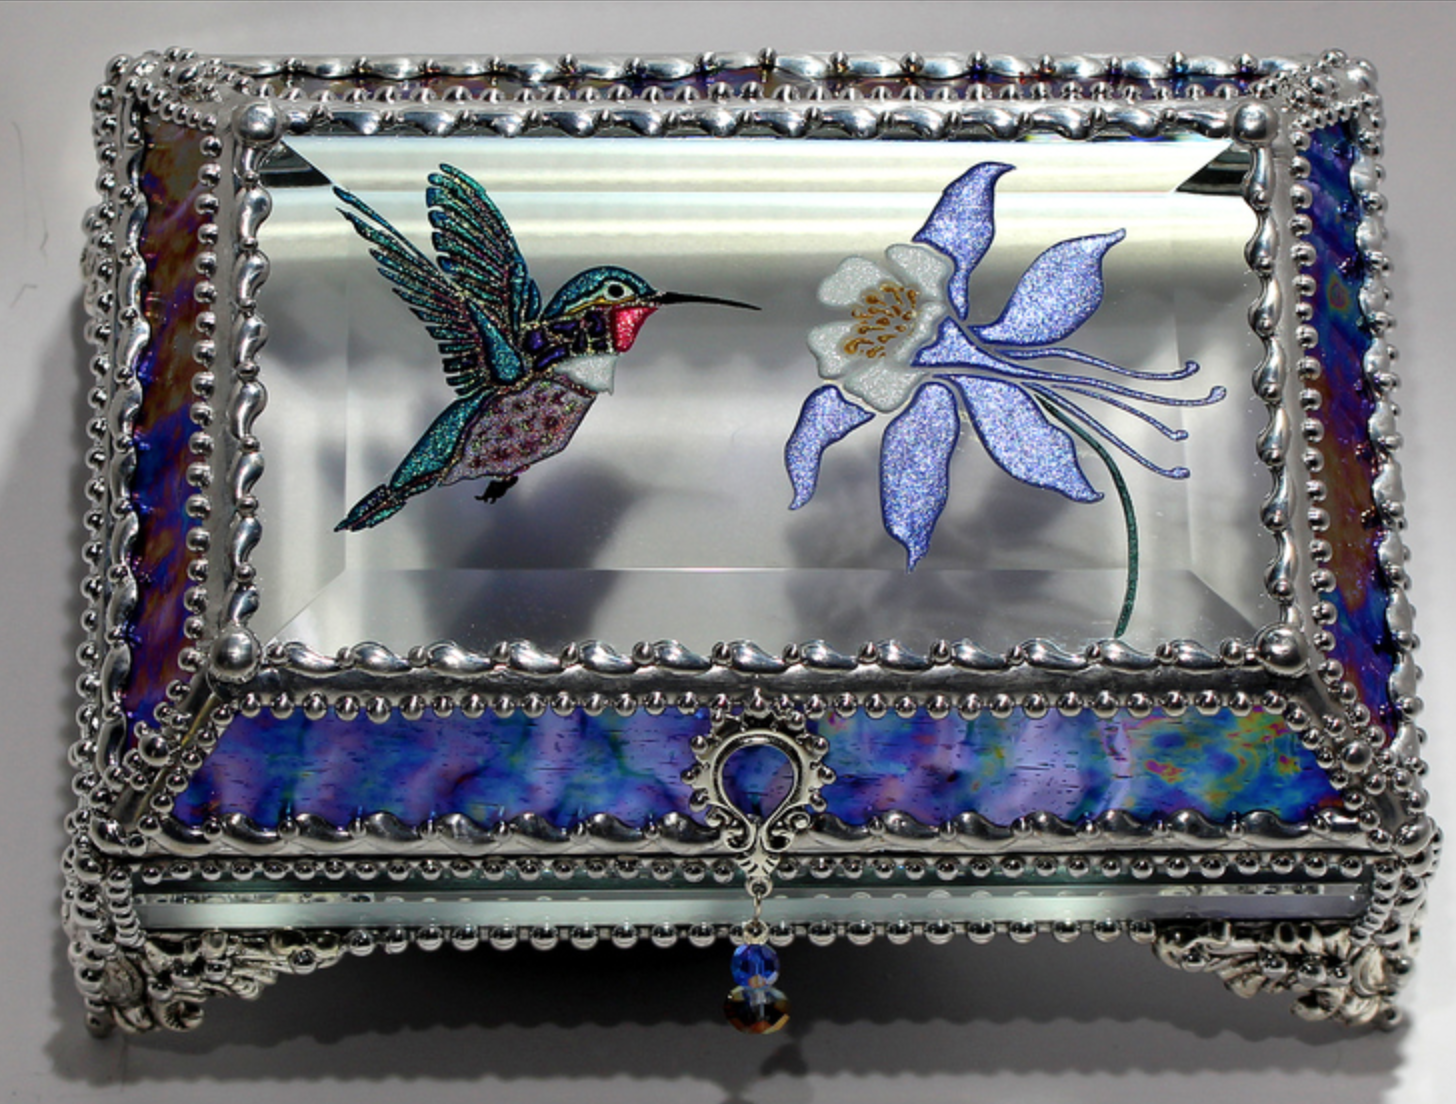 Kimberly Reed - http://glasstreasurebox.comWork combines hand worked metal, hand sandblasting, hand painting, hand cut bevels and glass